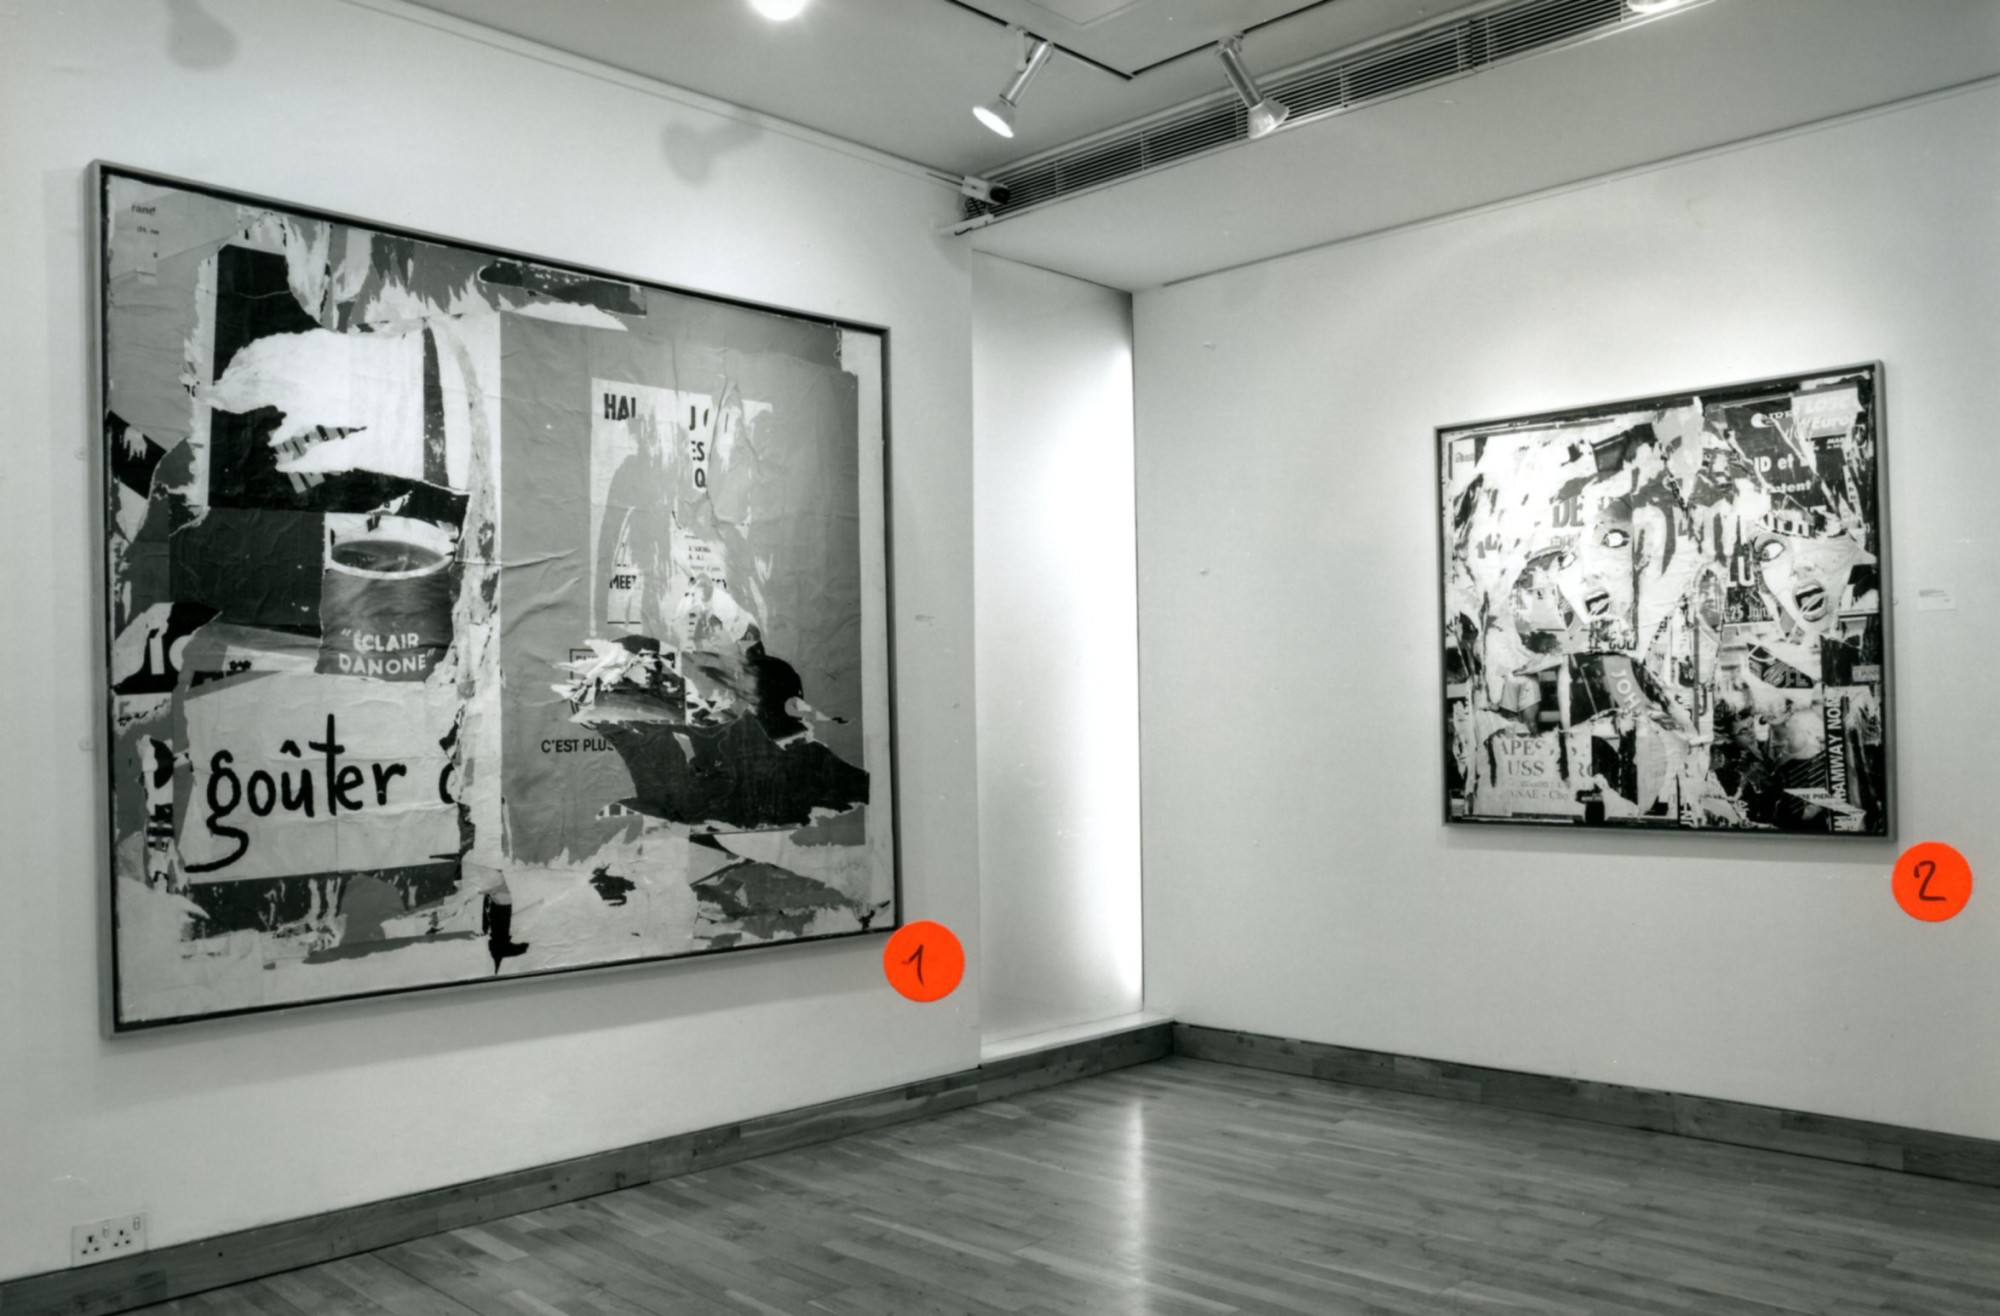 """<span class=""""link fancybox-details-link""""><a href=""""/exhibitions/147/works/image_standalone609/"""">View Detail Page</a></span><p>JACQUES VILLEGLE WORKS FROM 1955 - 1991 